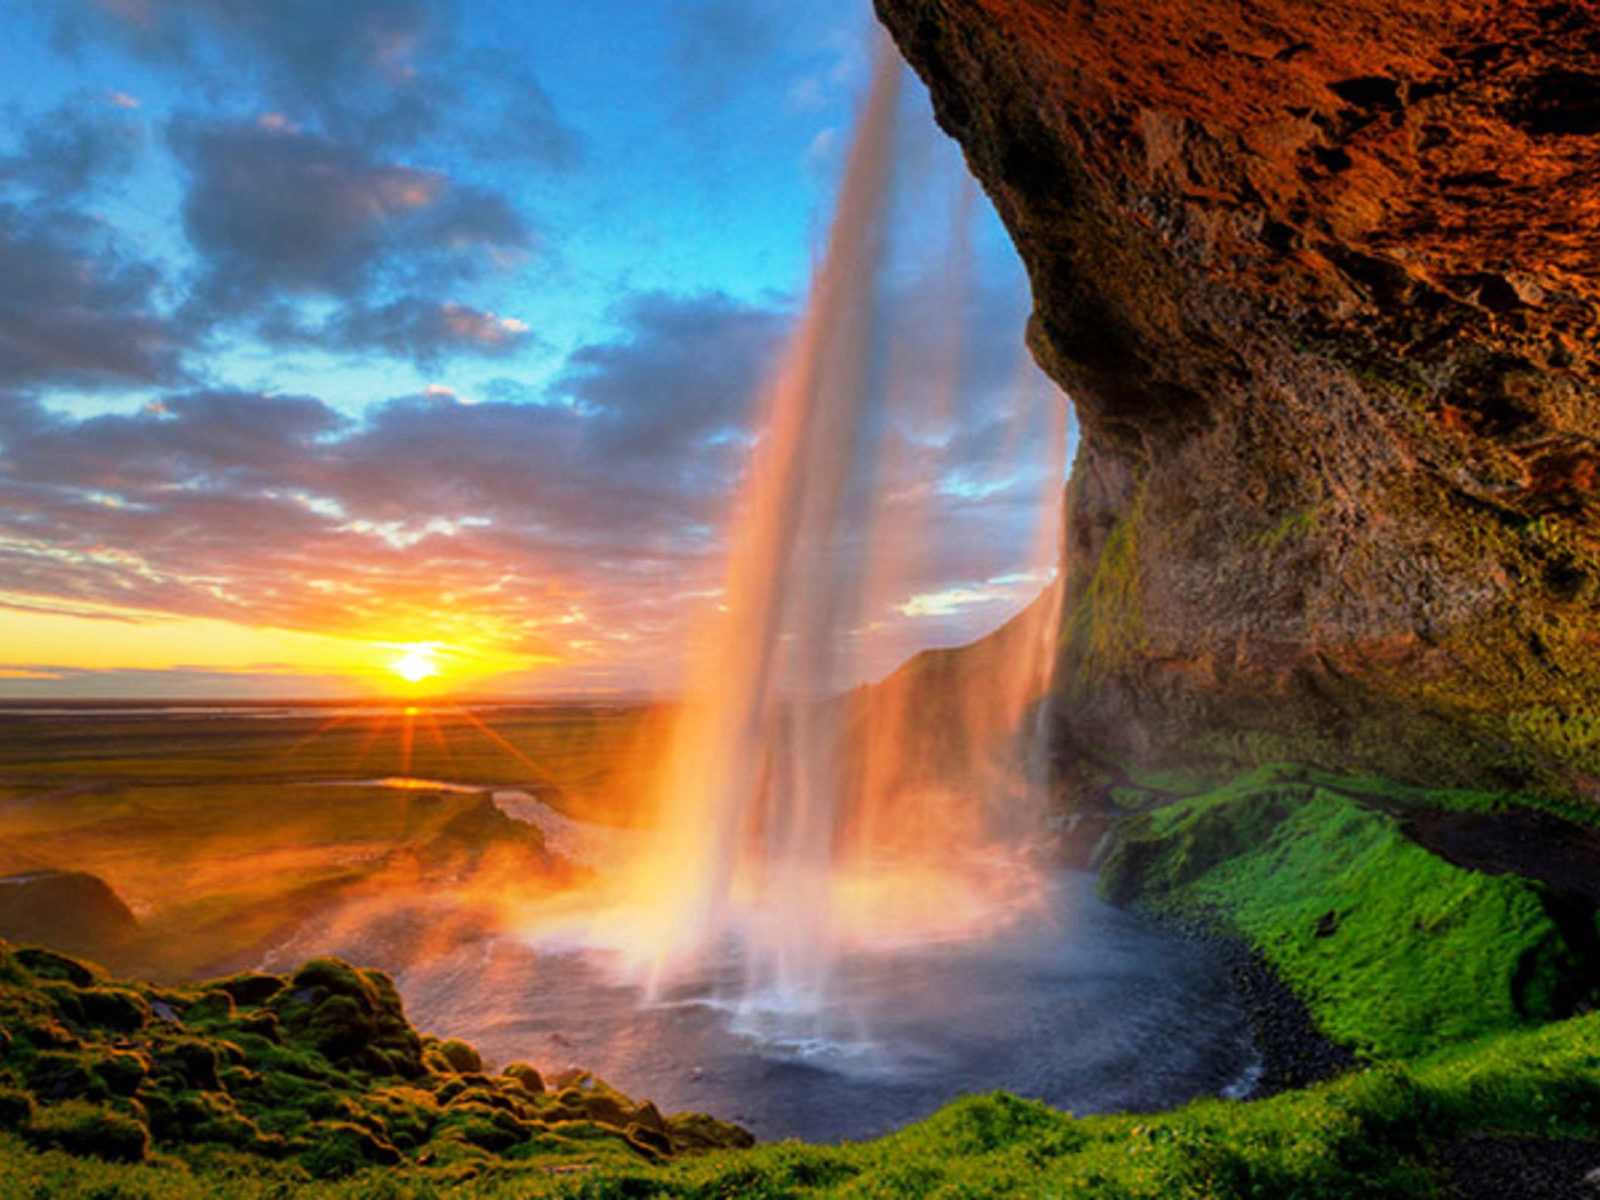 Victoria Falls Wallpaper Seljalandsfoss Is One Of The Most Famous Waterfalls In